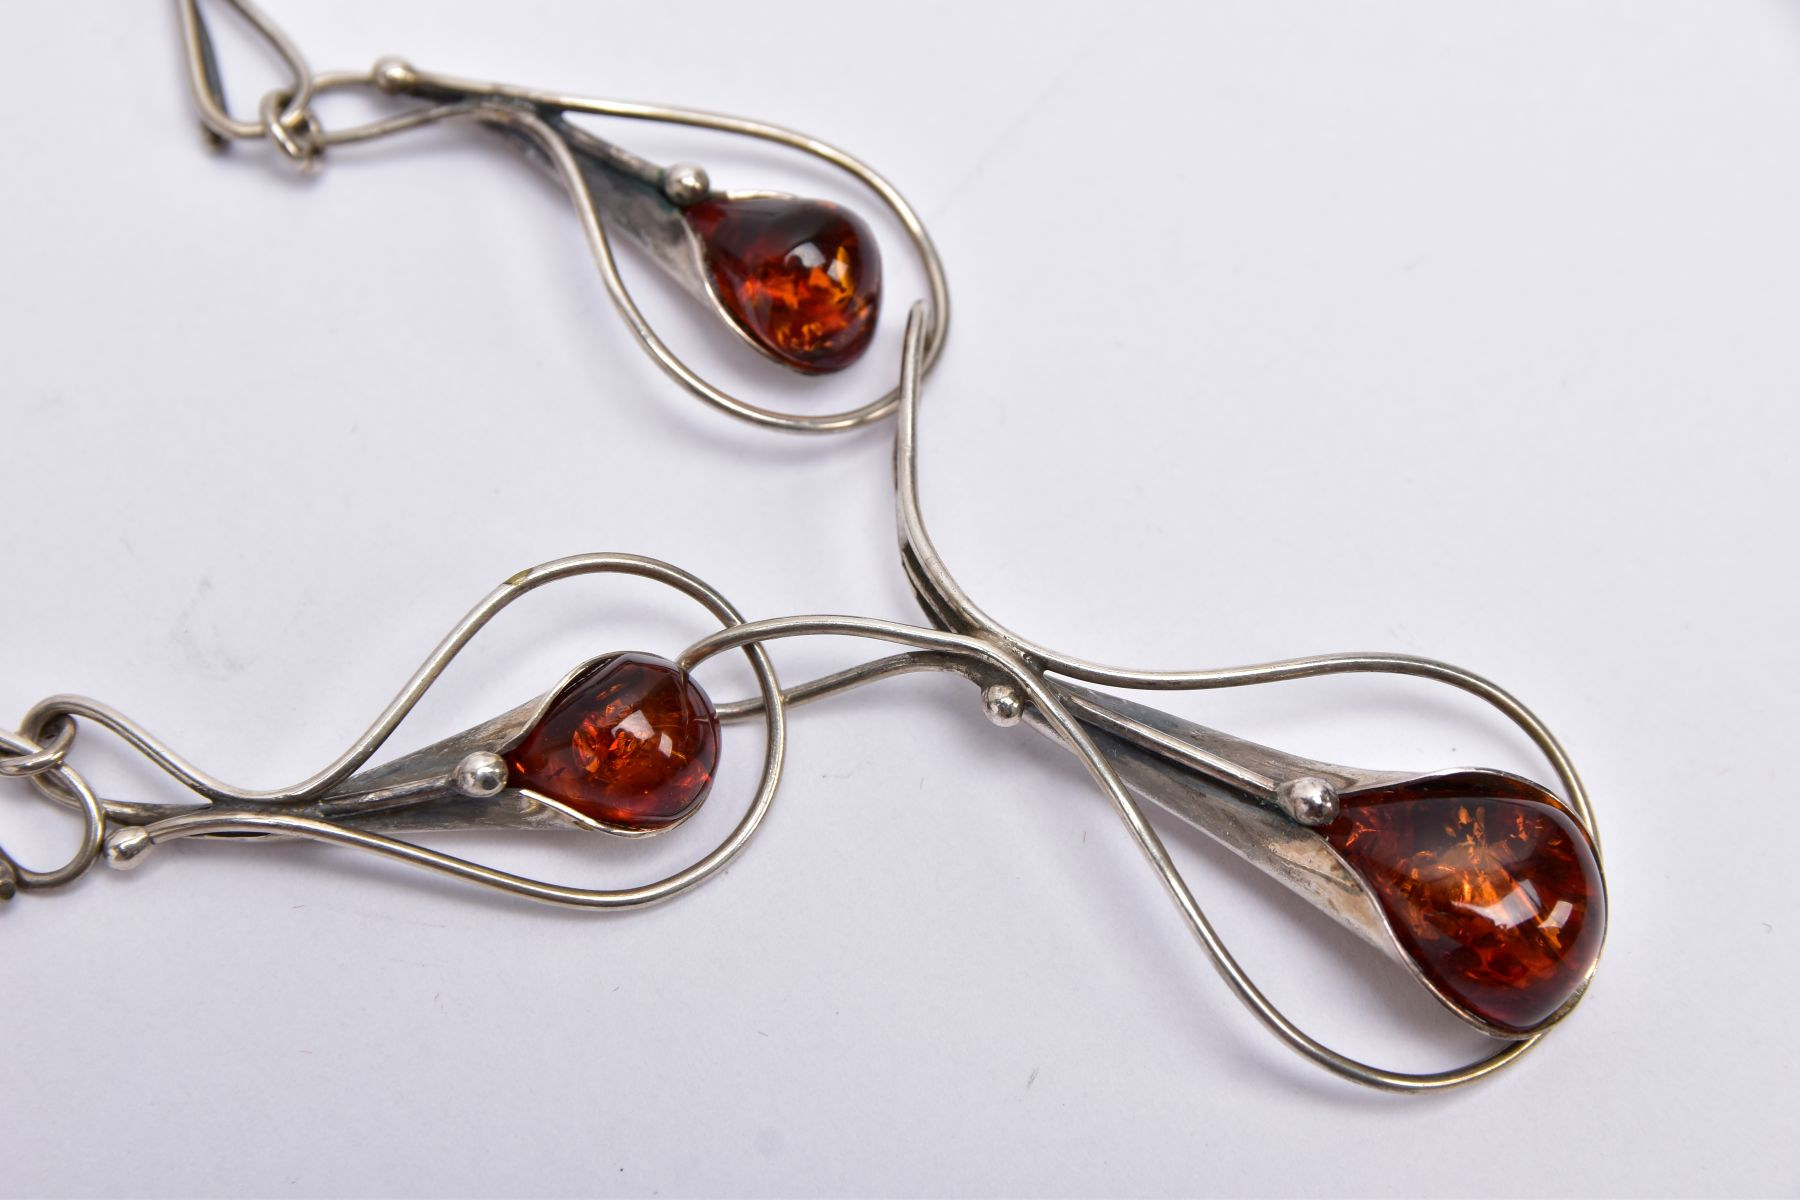 A SILVER AMBER NECKLACE, SILVER CUFFLINKS, STICK PIN, CUFFLINKS, ETC, the silver necklet designed - Image 5 of 5